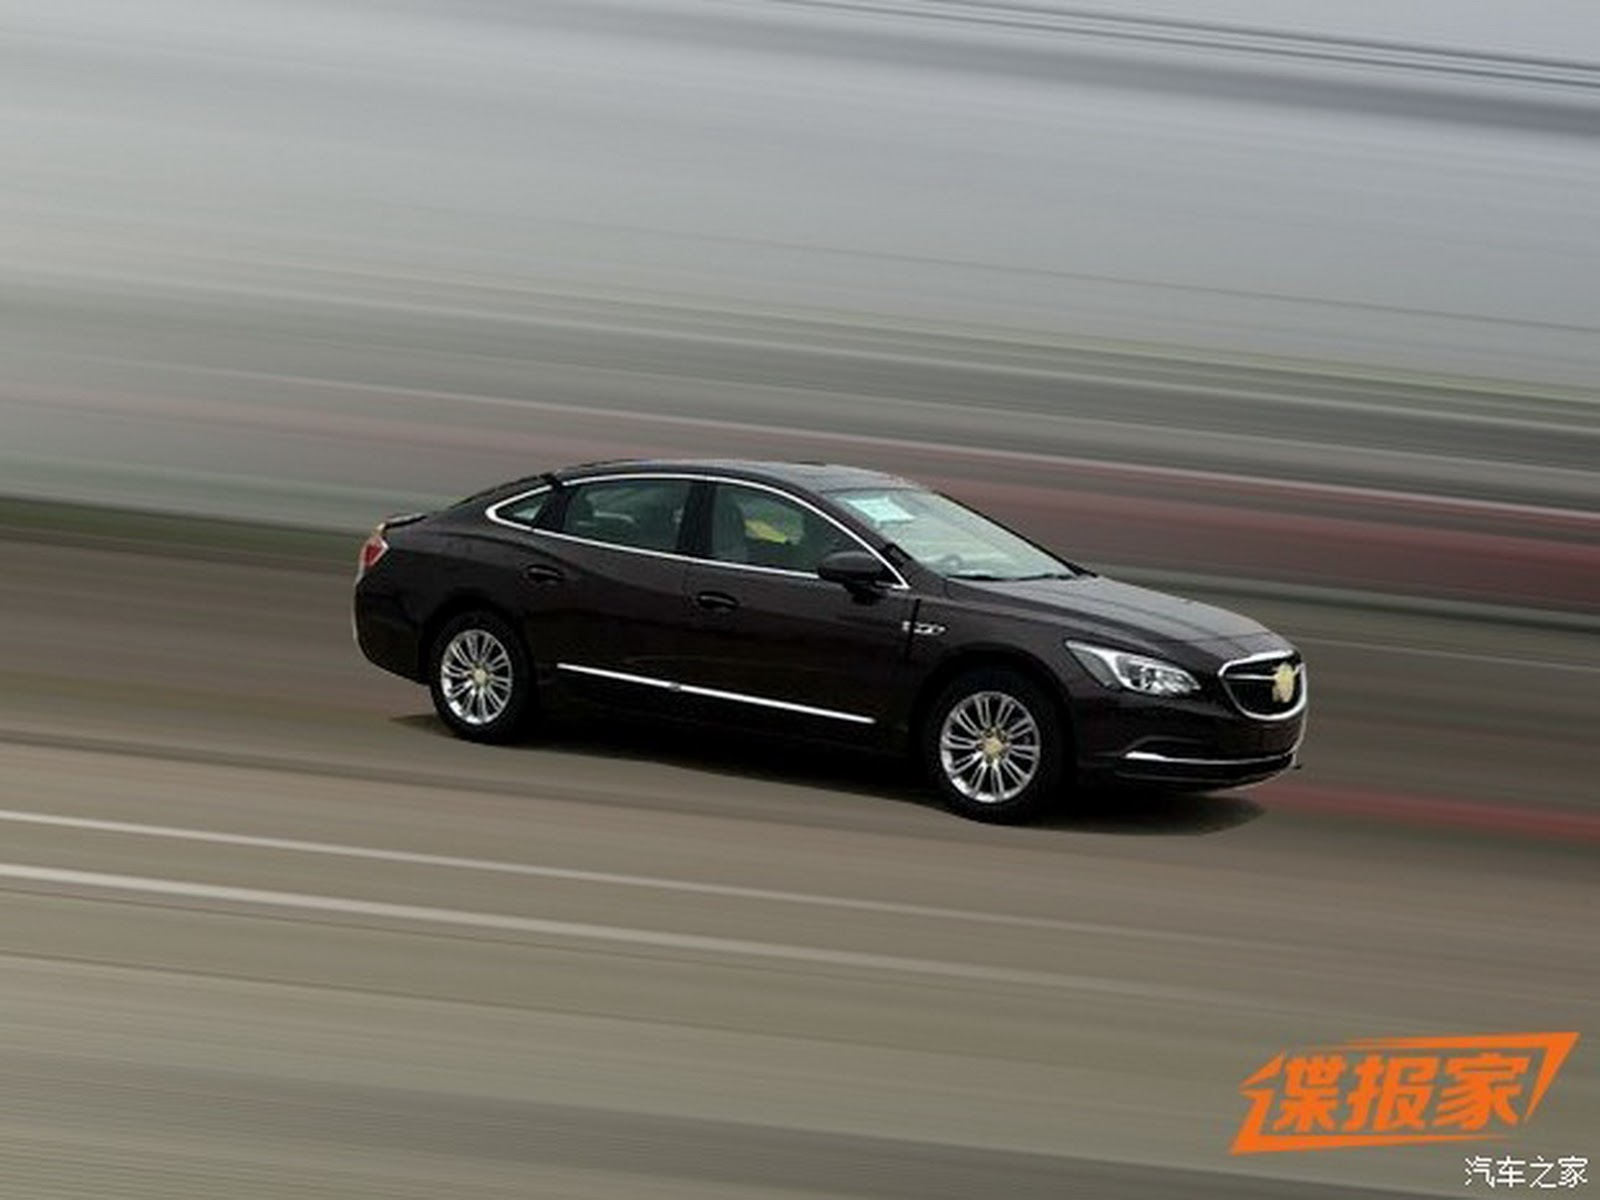 2017 buick lacrosse sedan exposed in china carscoops. Black Bedroom Furniture Sets. Home Design Ideas